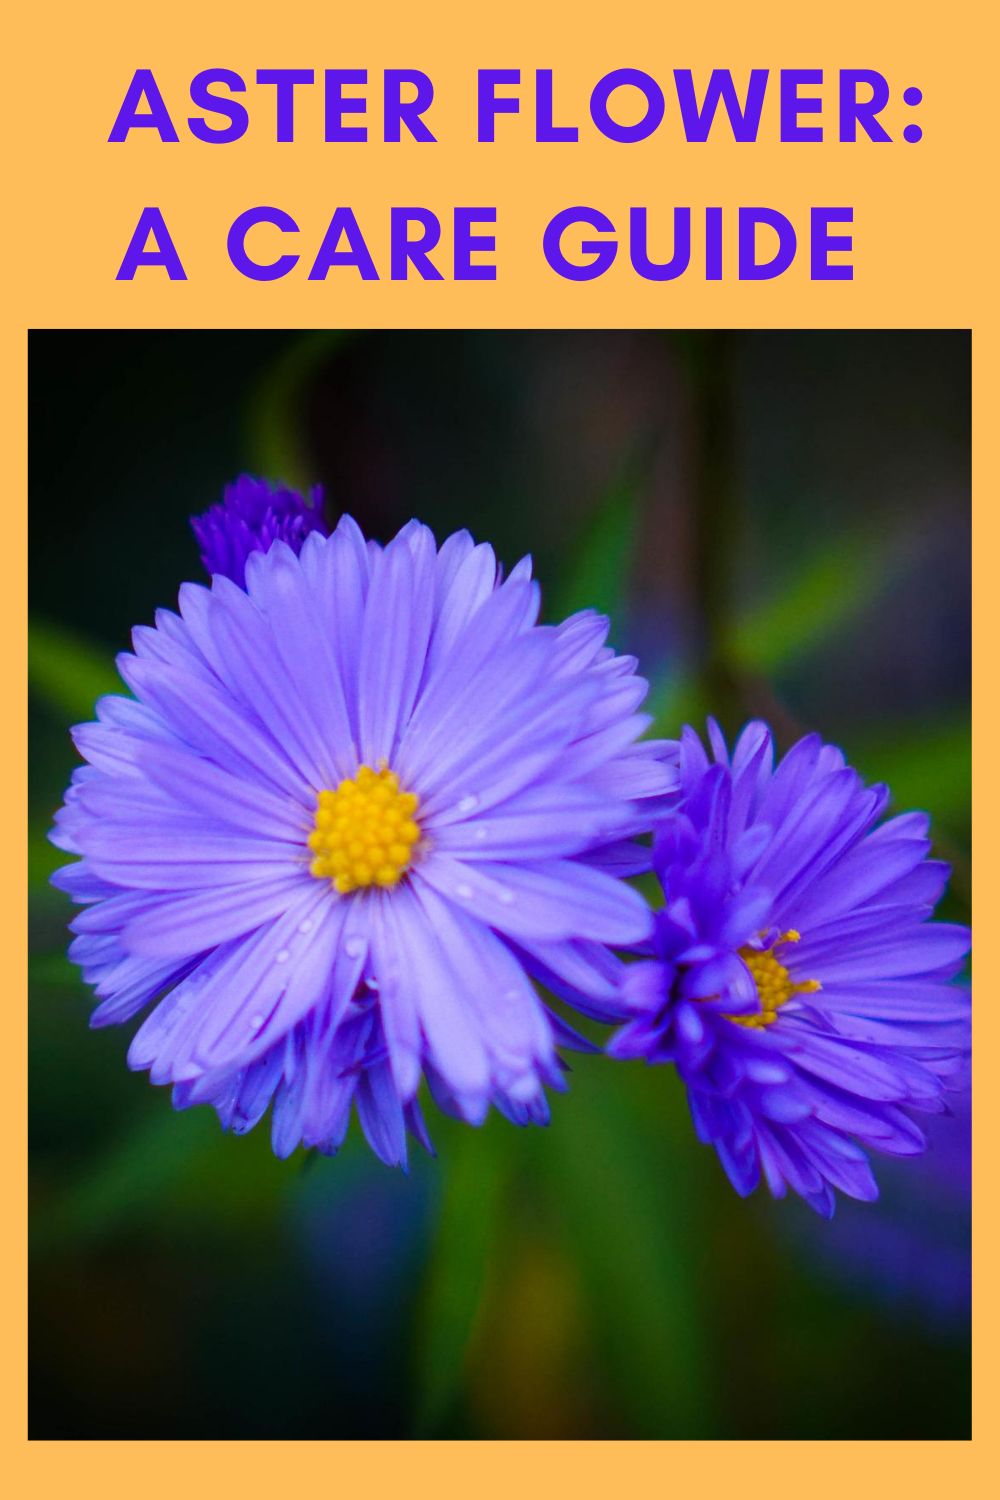 Aster Flower A Care Guide In 2020 Aster Flower Flower Care Aster